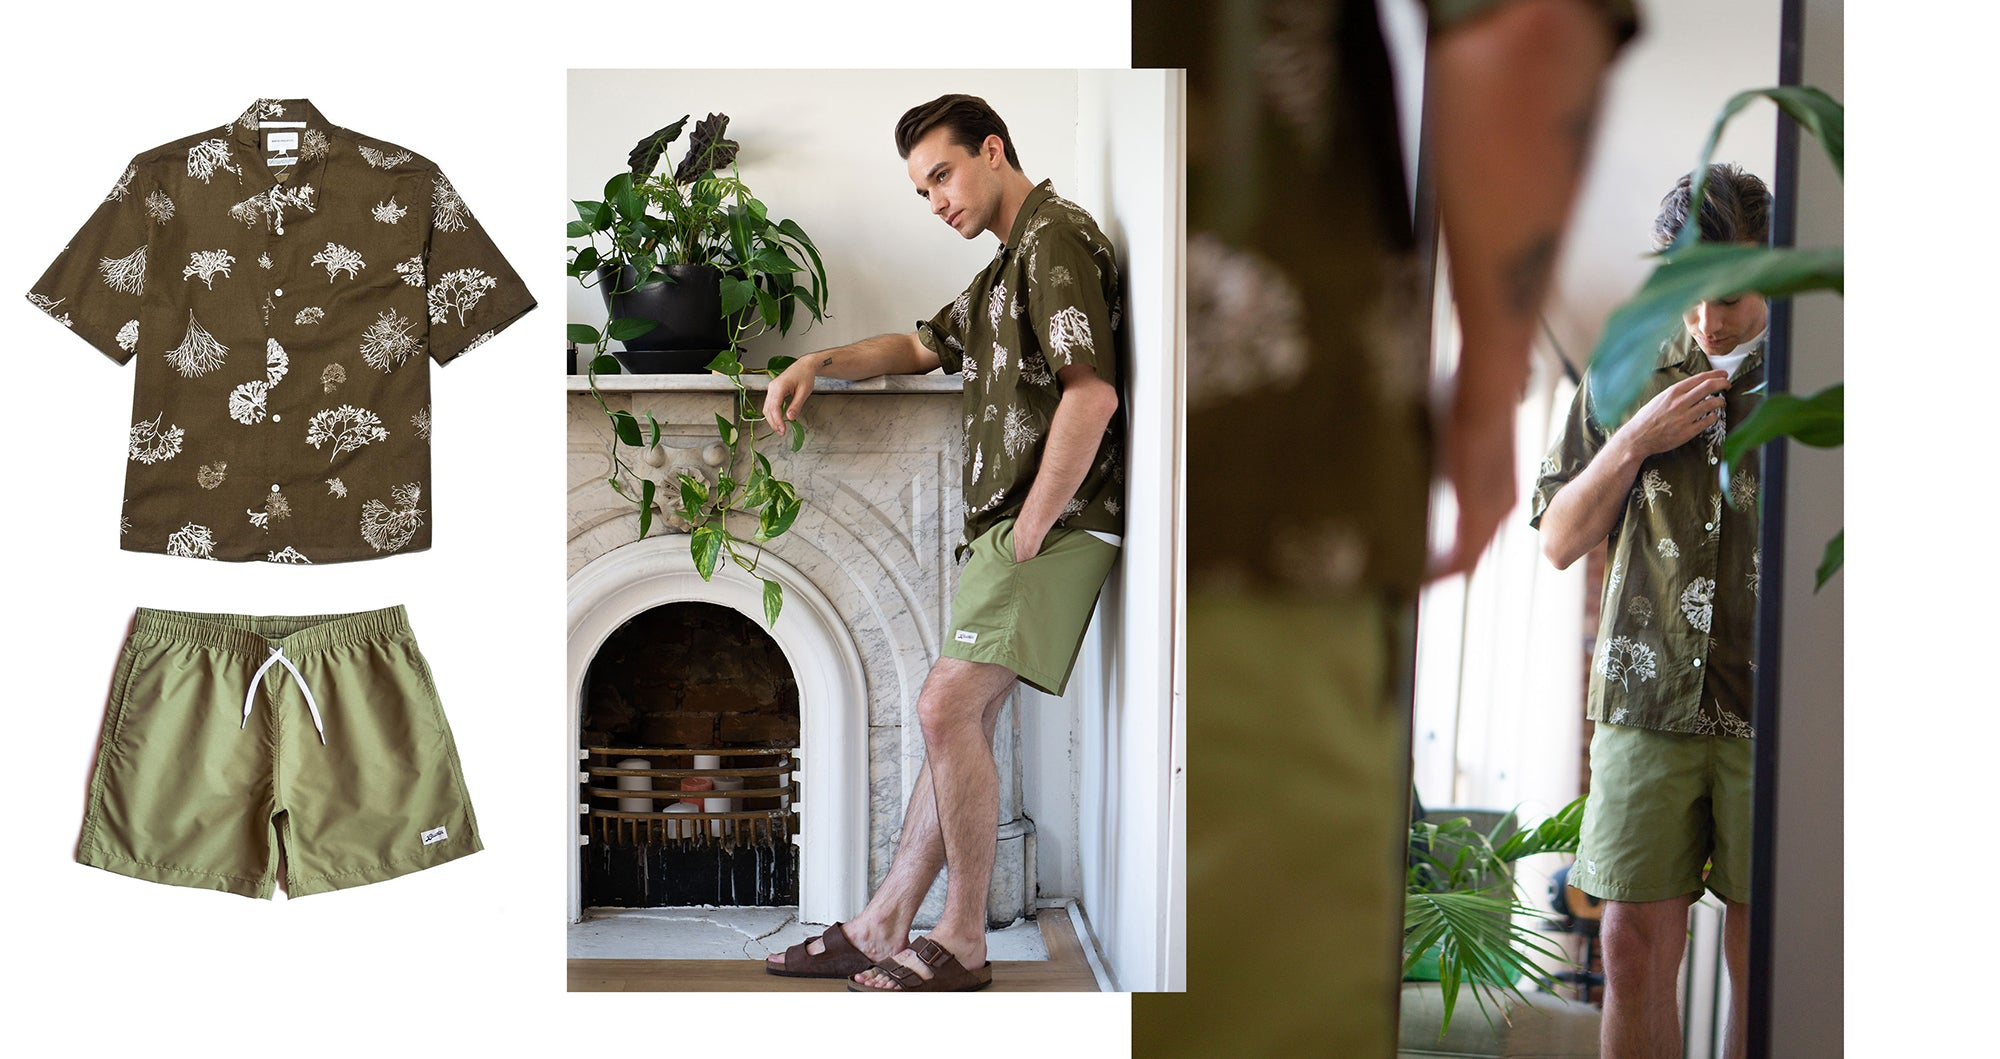 Bather Solid Olive Swim Trunk Outfit Inspiration